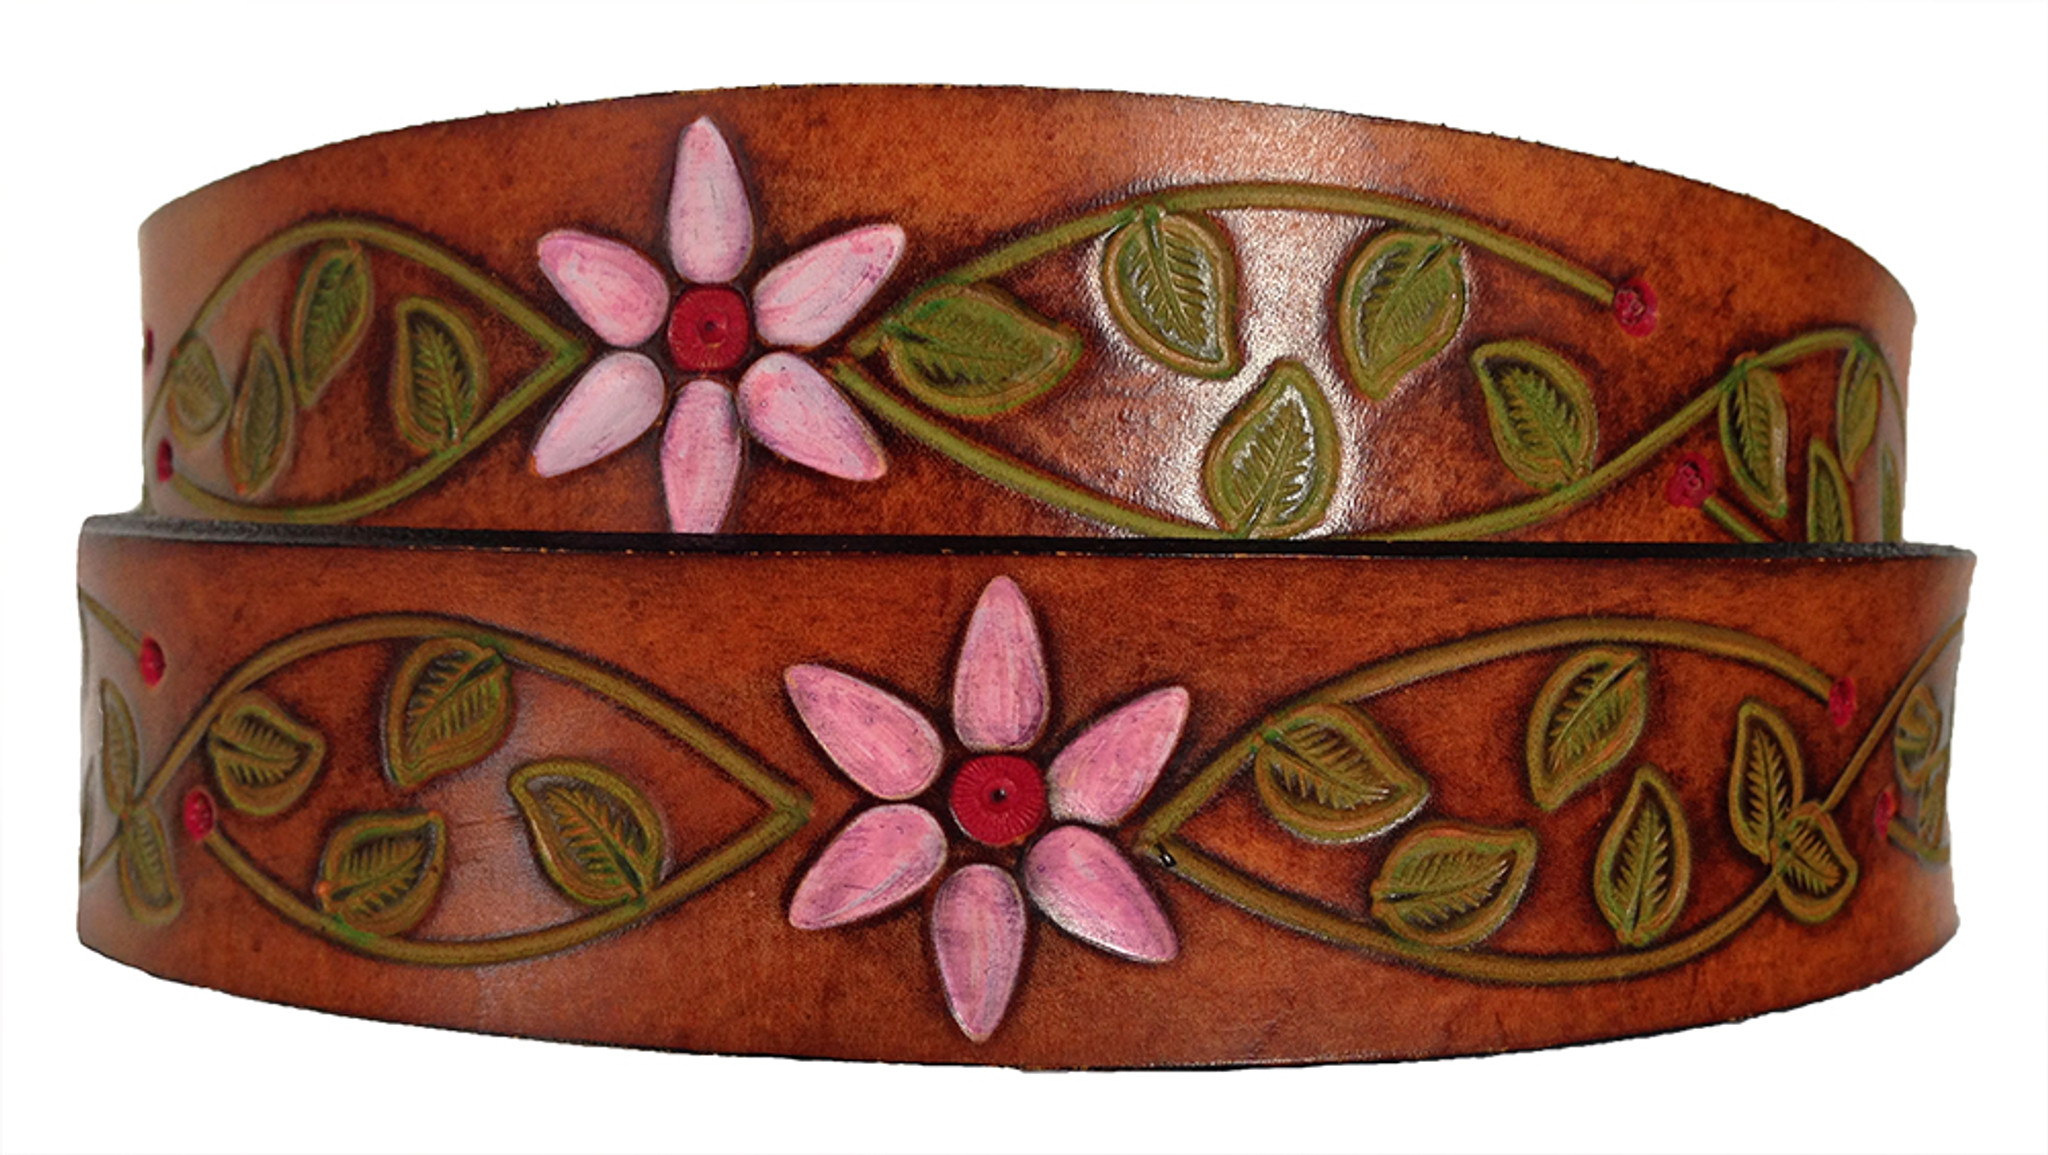 'URBAN COWGIRL' Leather Belt